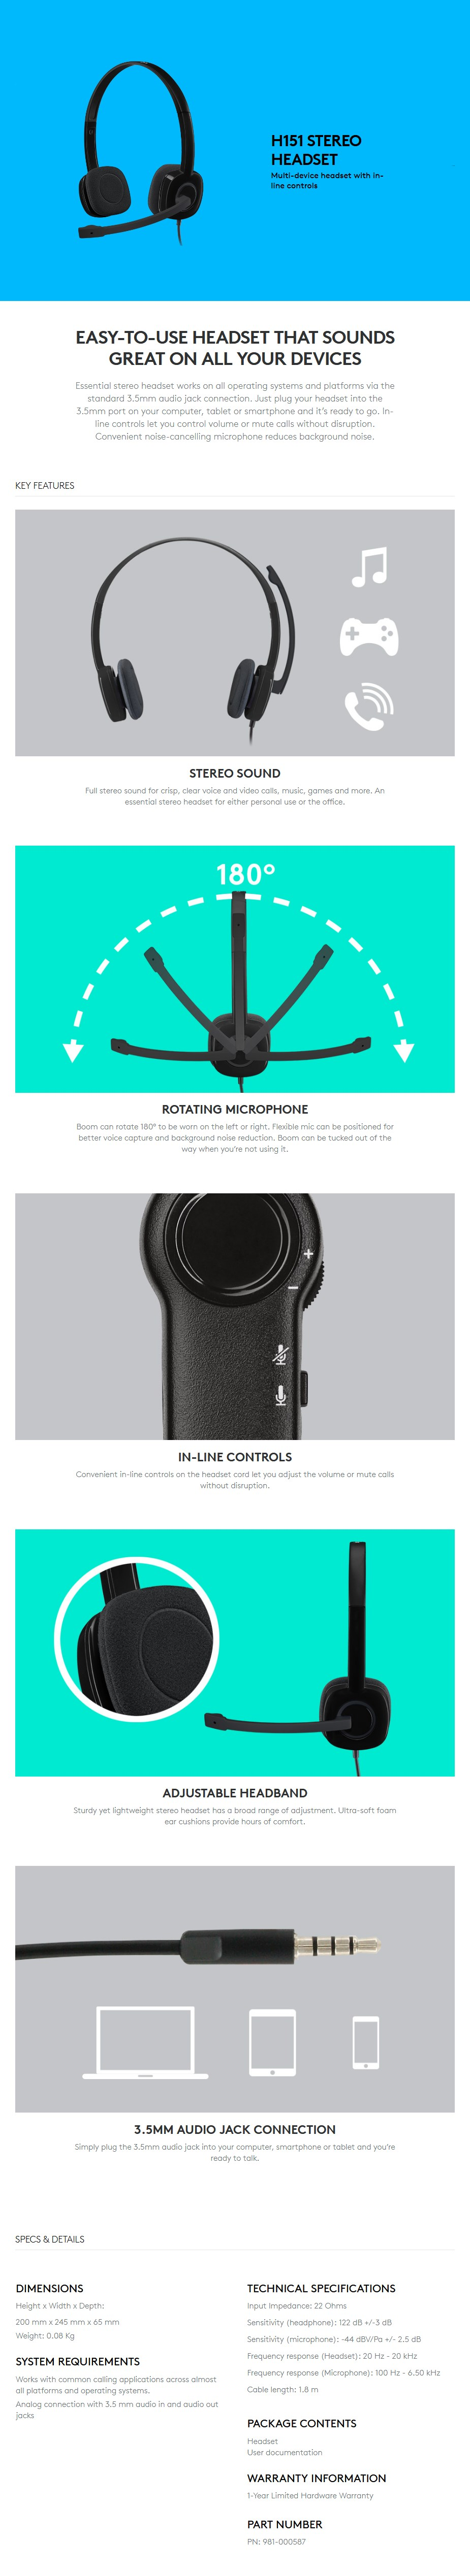 Logitech H151 Stereo Headset - Overview 1